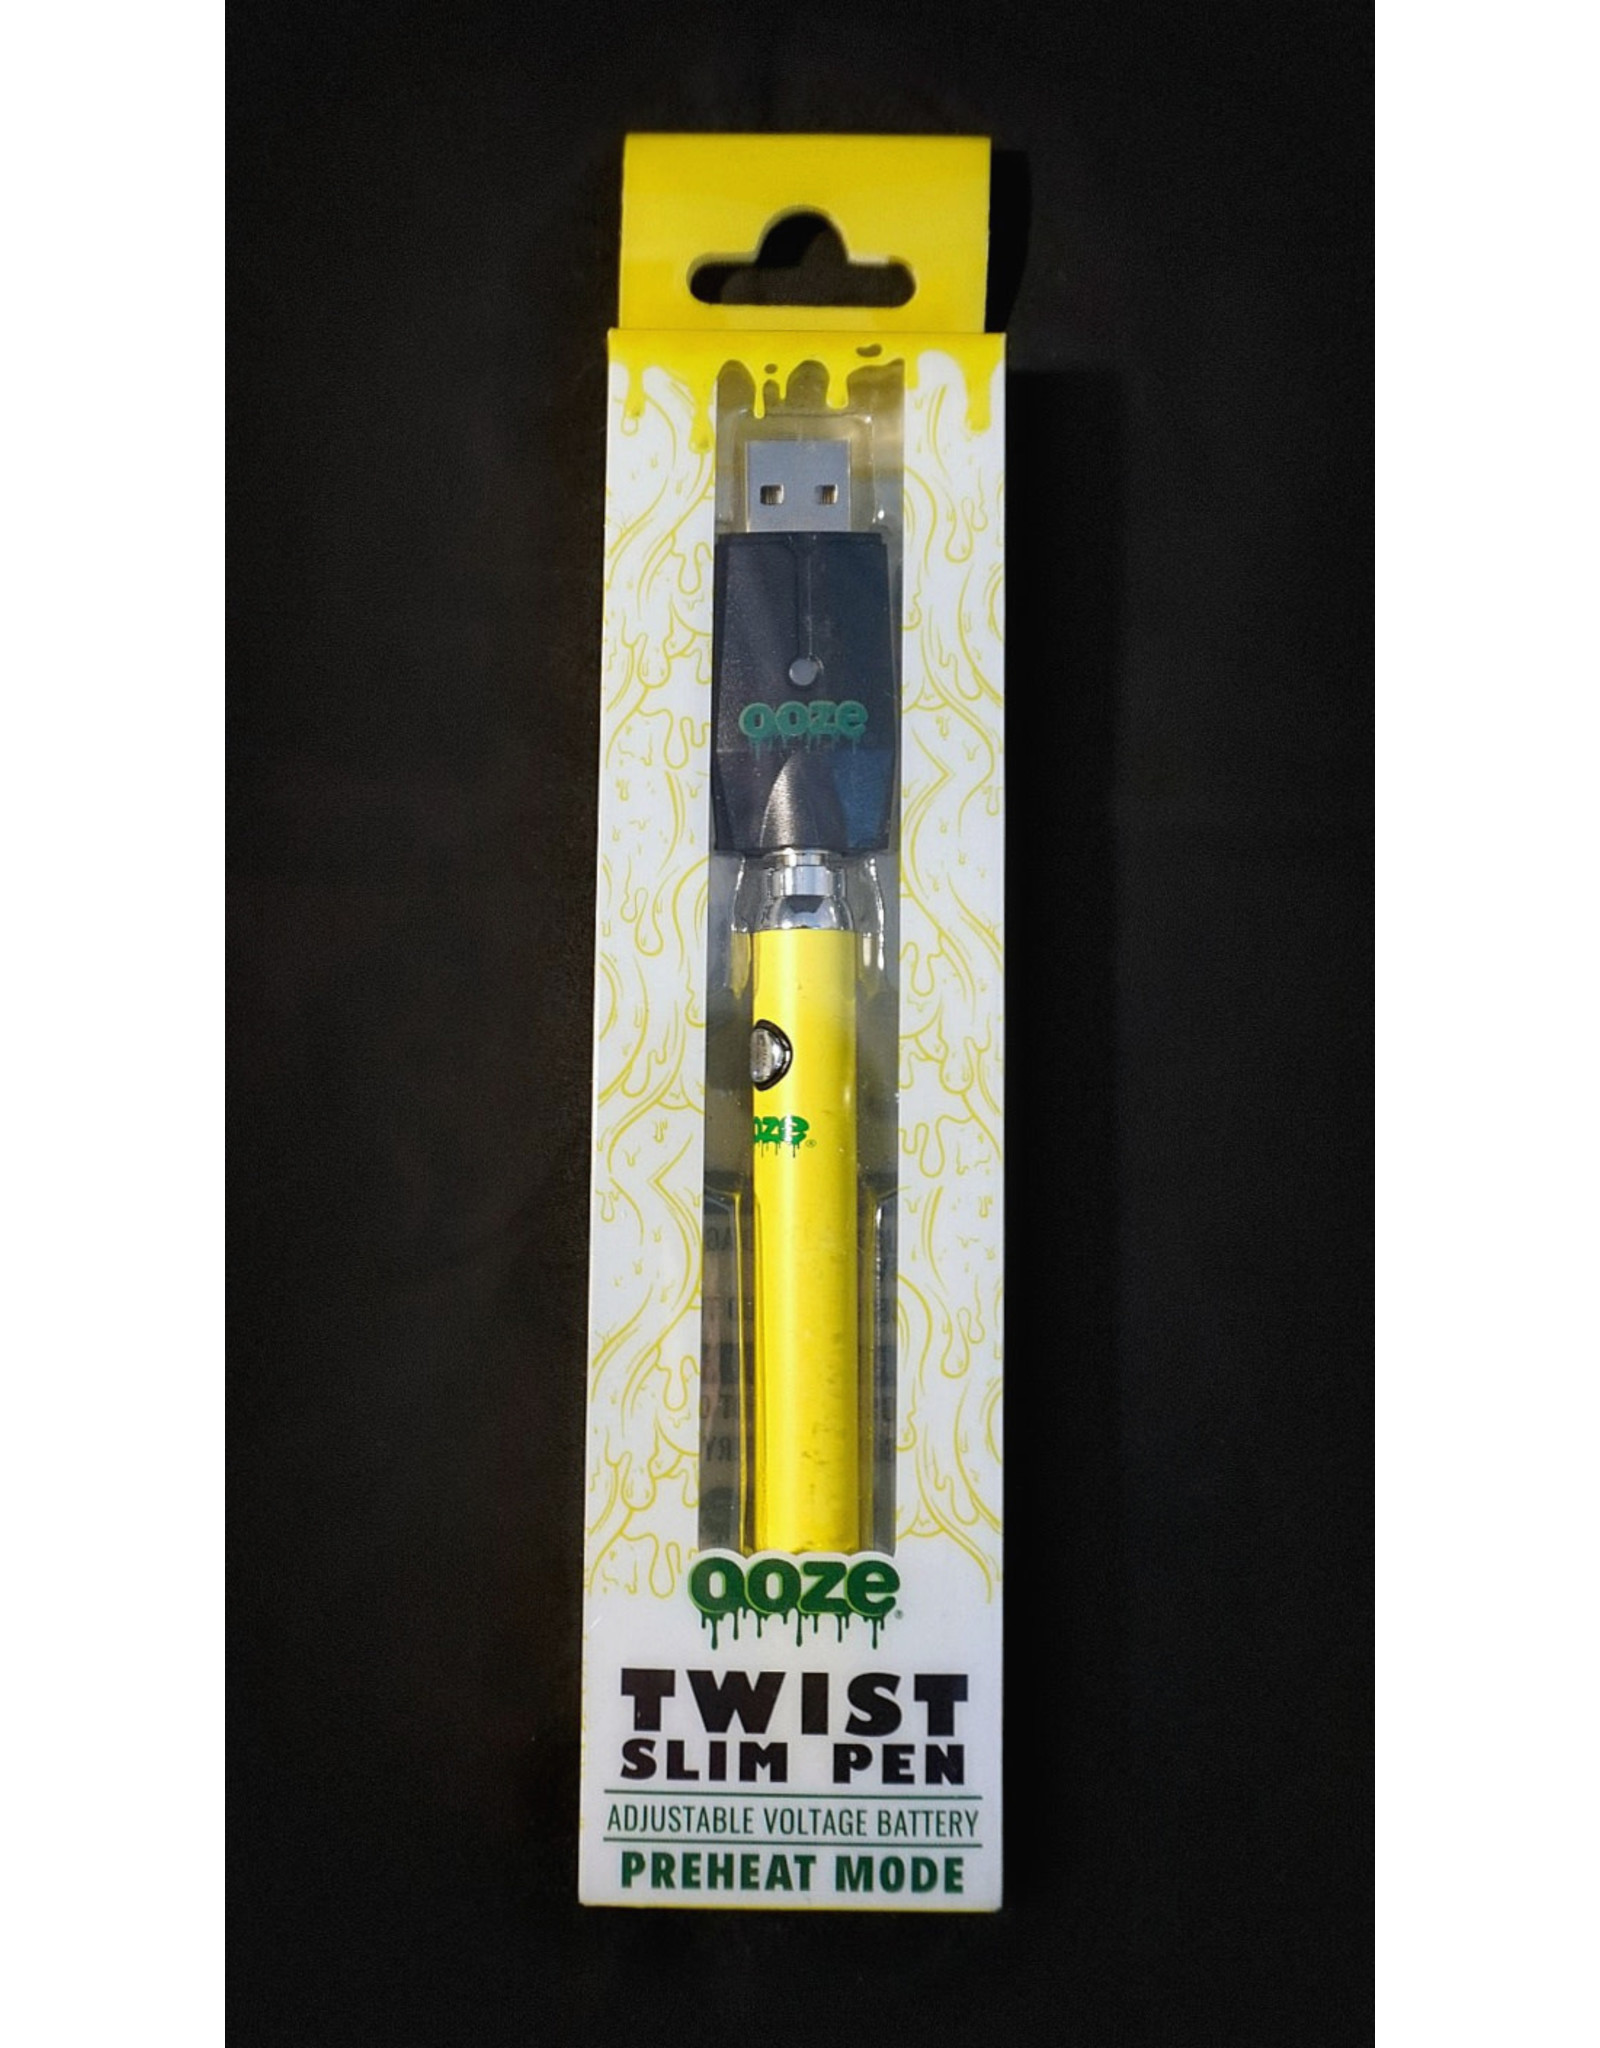 Ooze Ooze Twist Battery with USB Charger Yellow